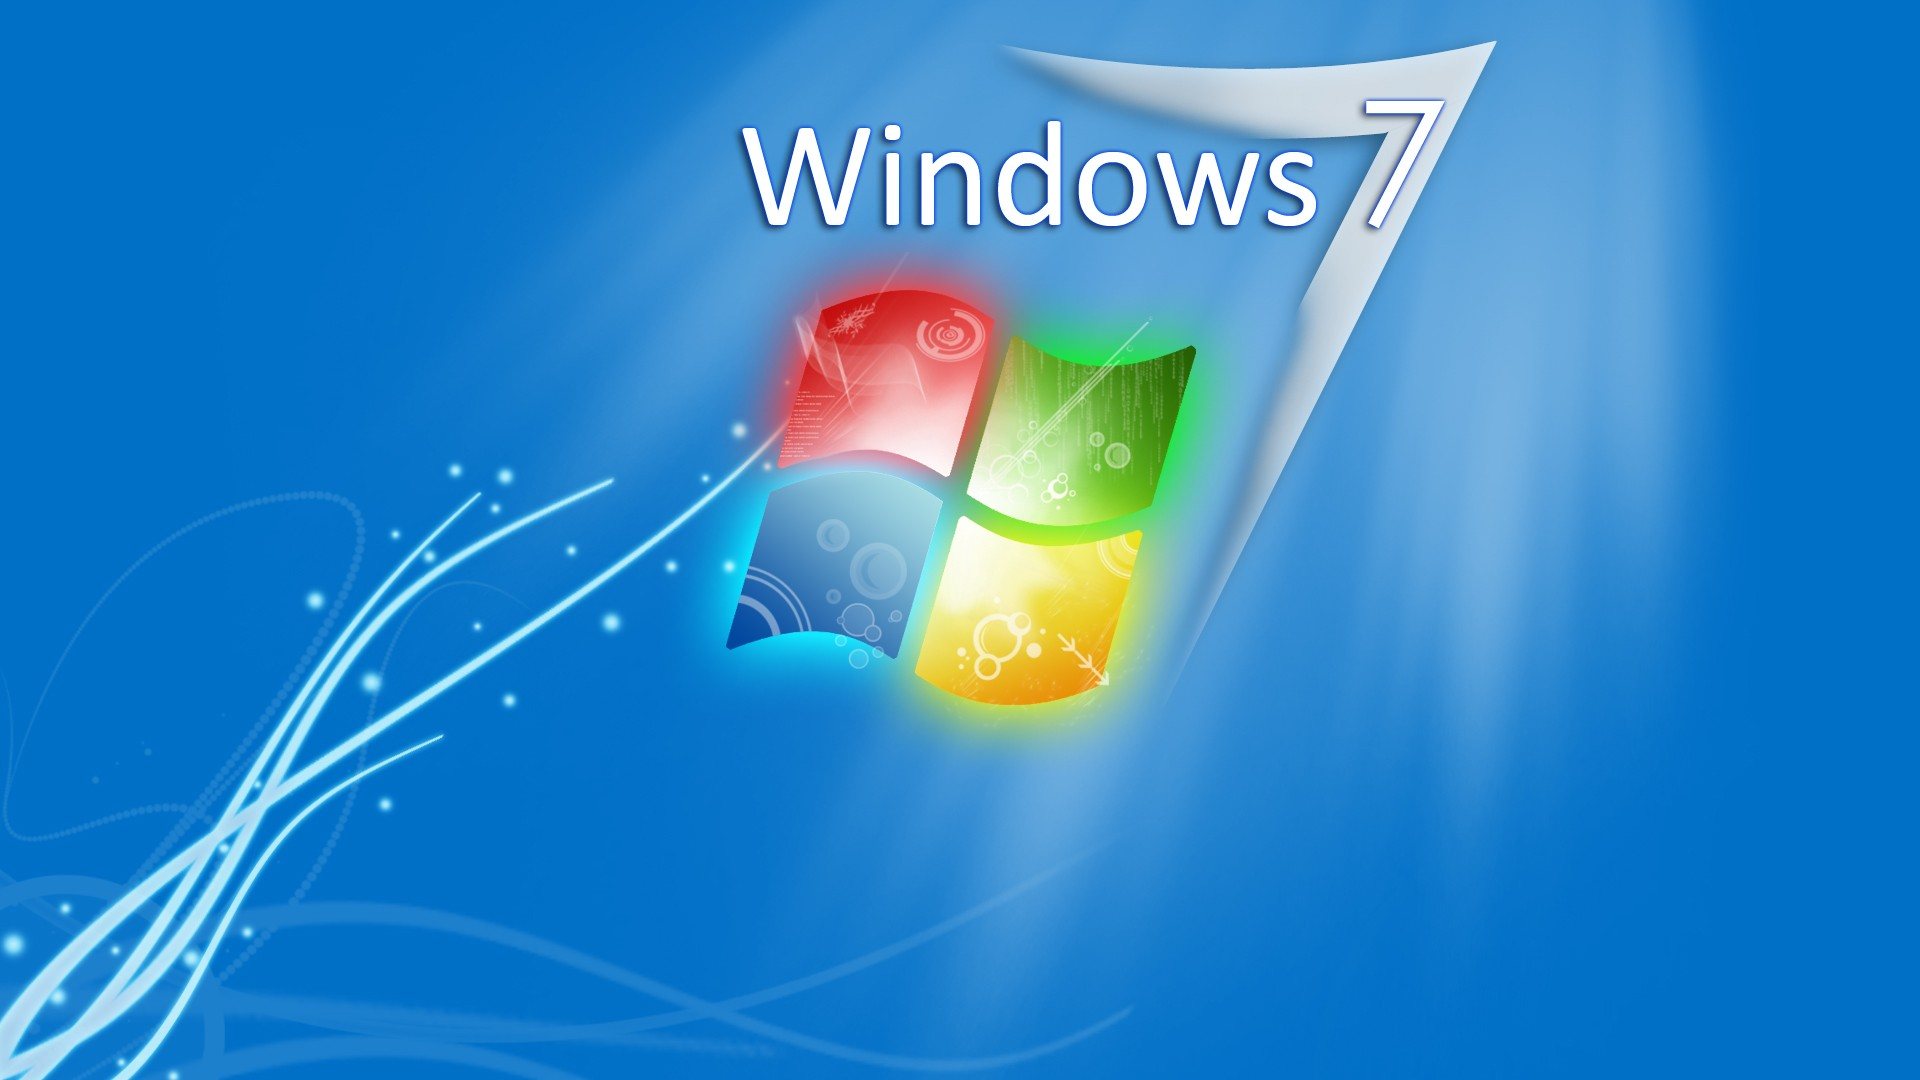 Branded saver Windows 7